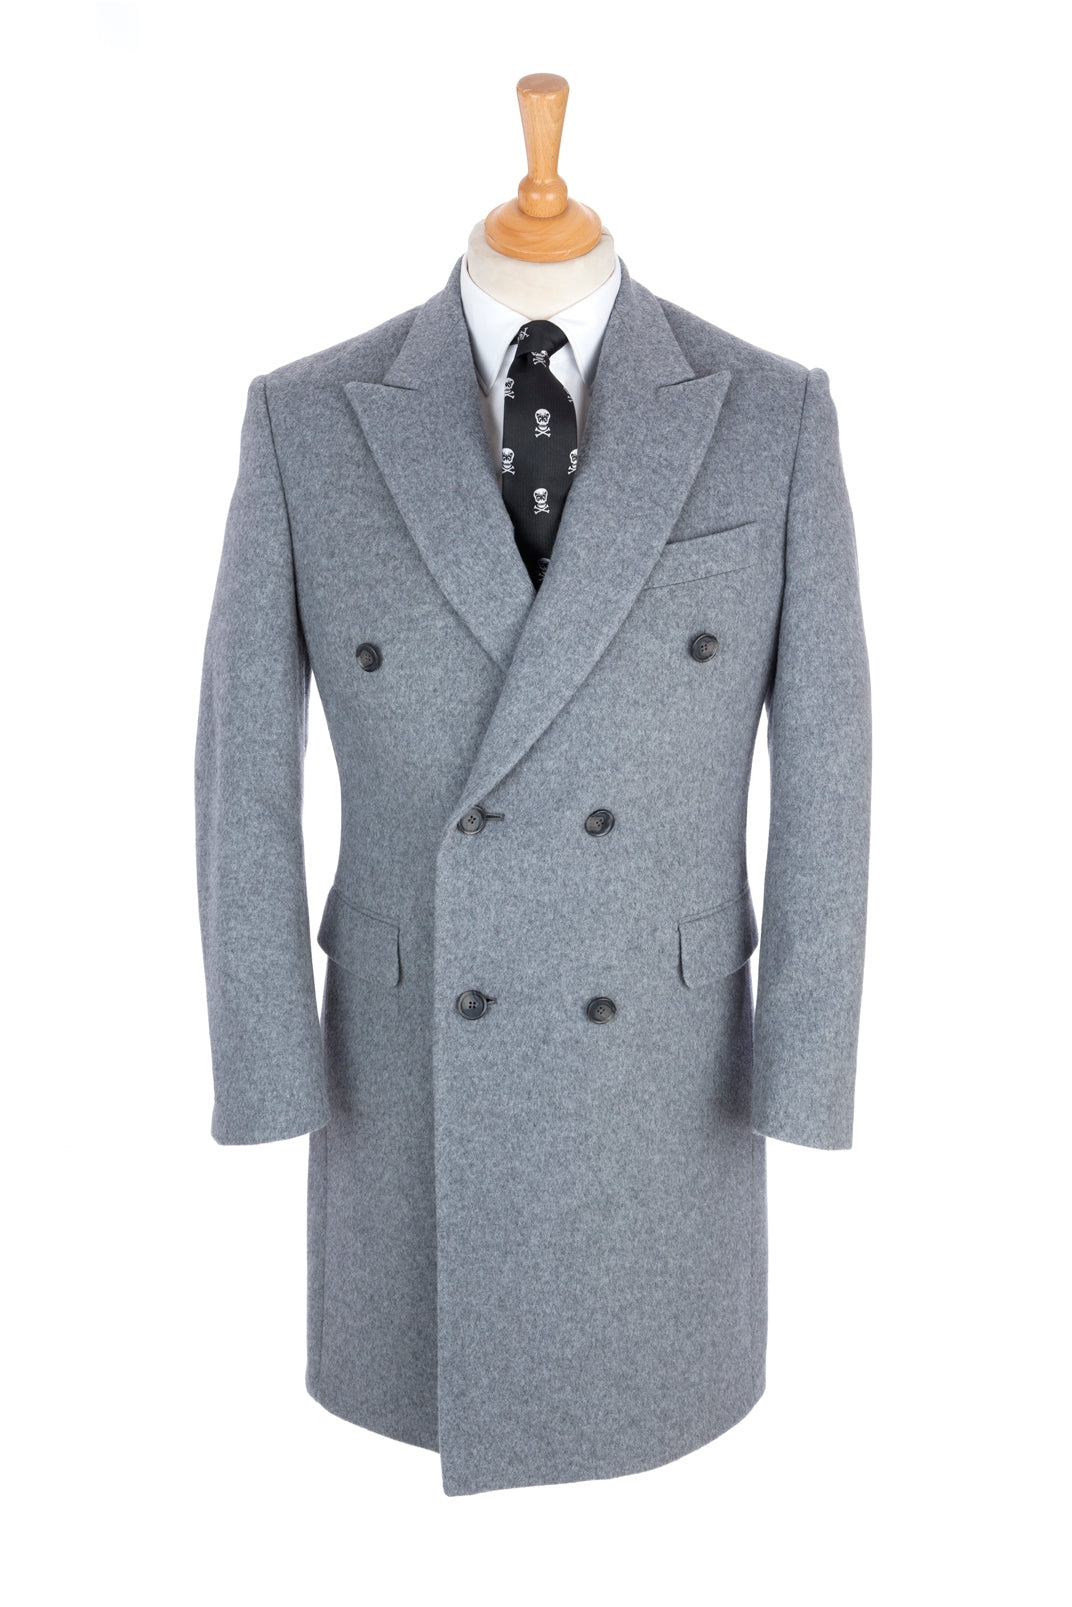 Regent Overcoat - Jason - Cashmere and Wool - Light Grey - Regent Tailoring